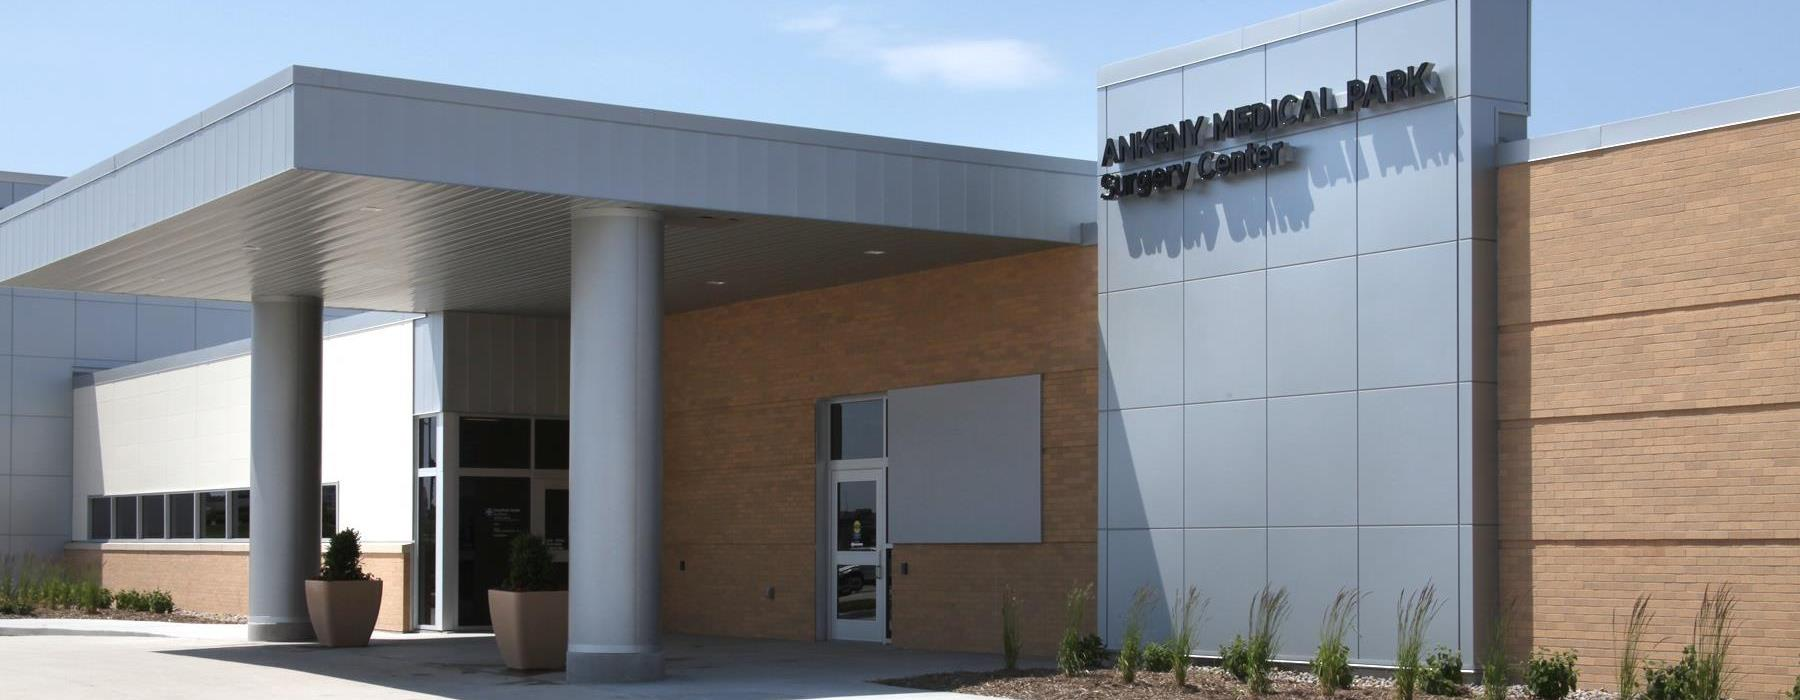 front of ankeny medical park surgery center